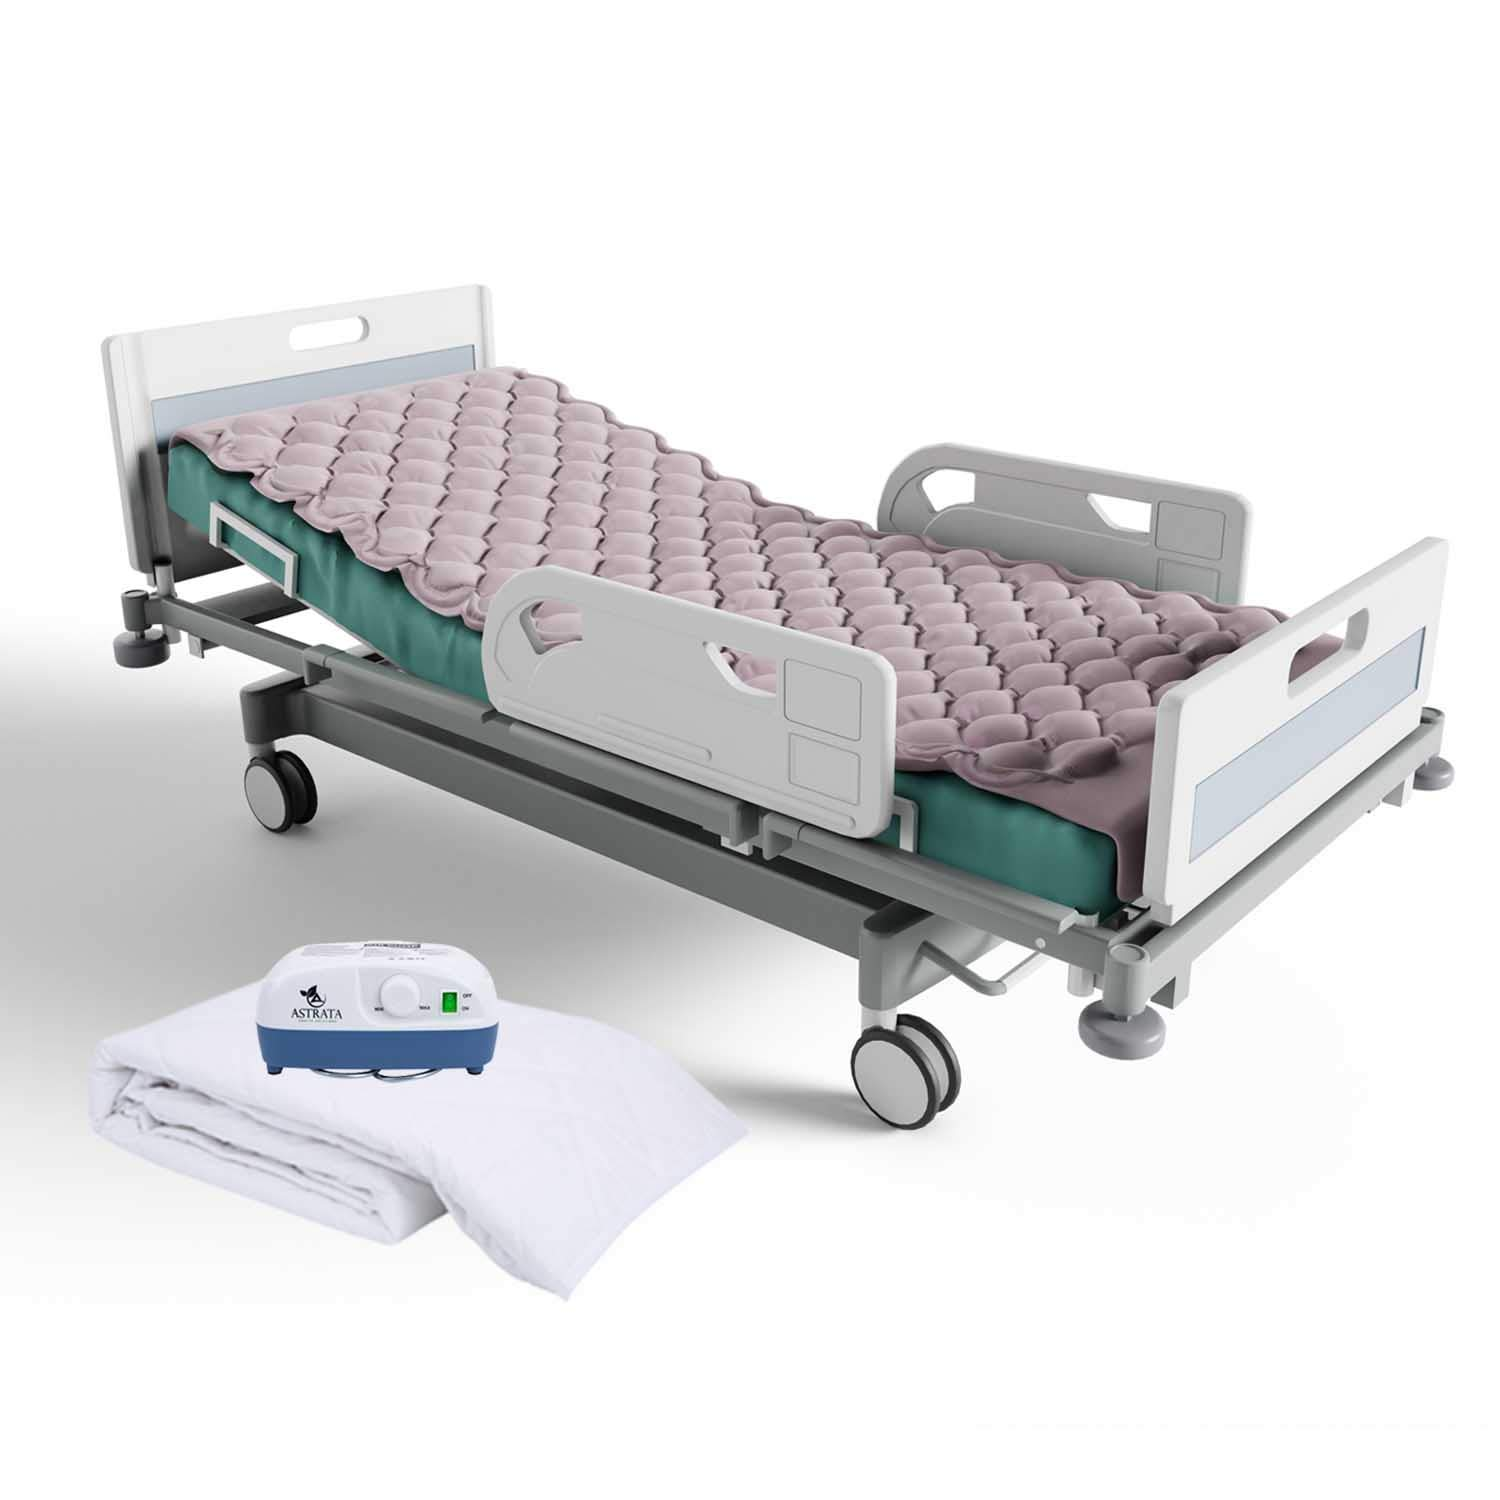 Alternating Pressure Mattress Include Electric Air Pump and Inflatable Mattress Pads with Bed Cover - Prevent Pressure Ulcer - Sore Treatment - Colchon Antiescaras - Fit Medical Hospital Bed